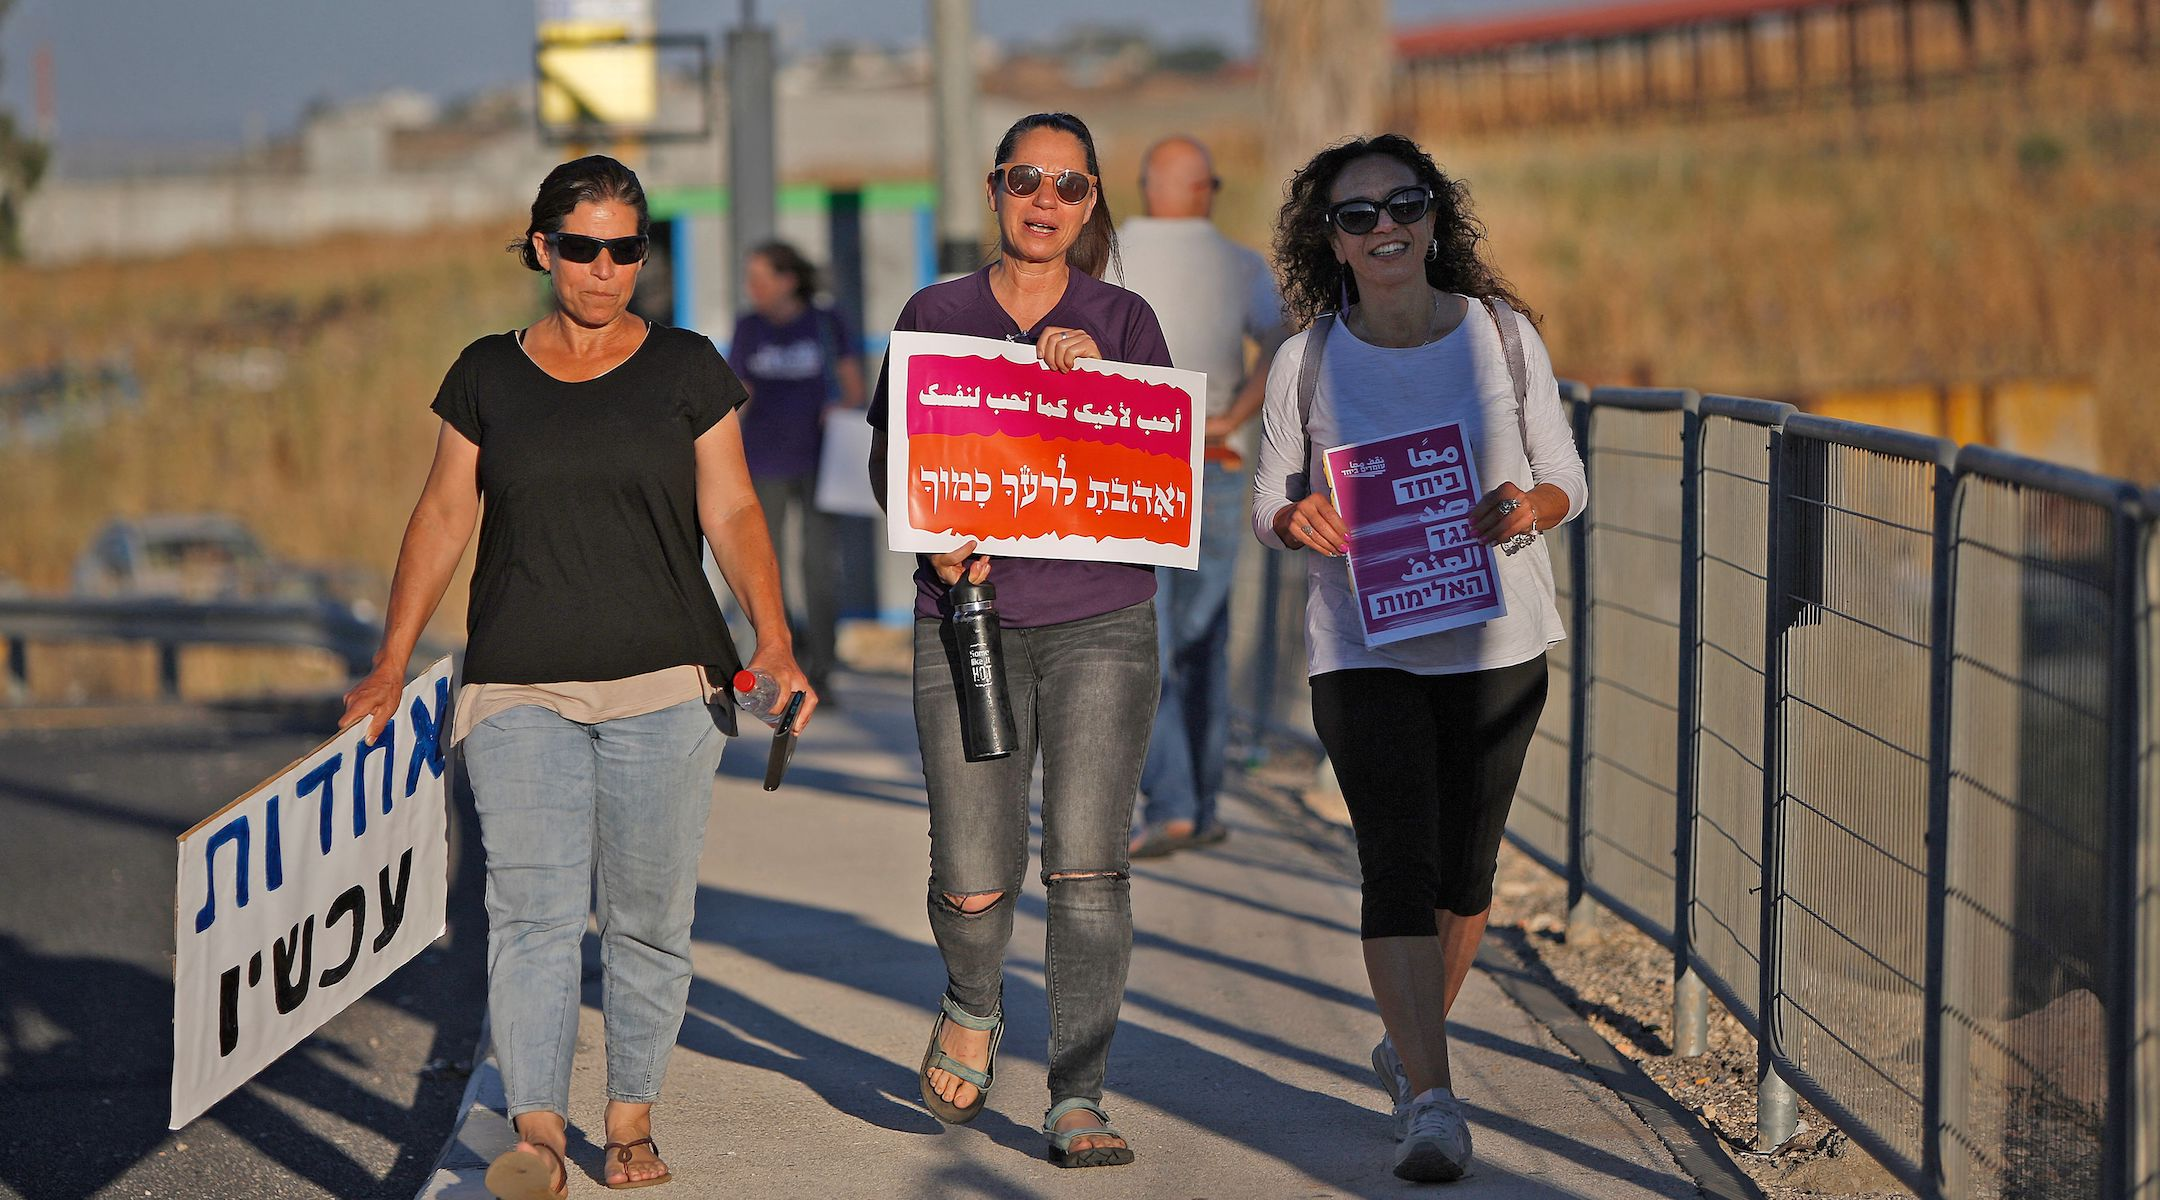 """Three women walk in a demonstration for coexistence in northern Israel on May 11, 2021. The sign in the middle says """"Love your neighbor as yourself."""" (Jalaa Marey/AFP)"""